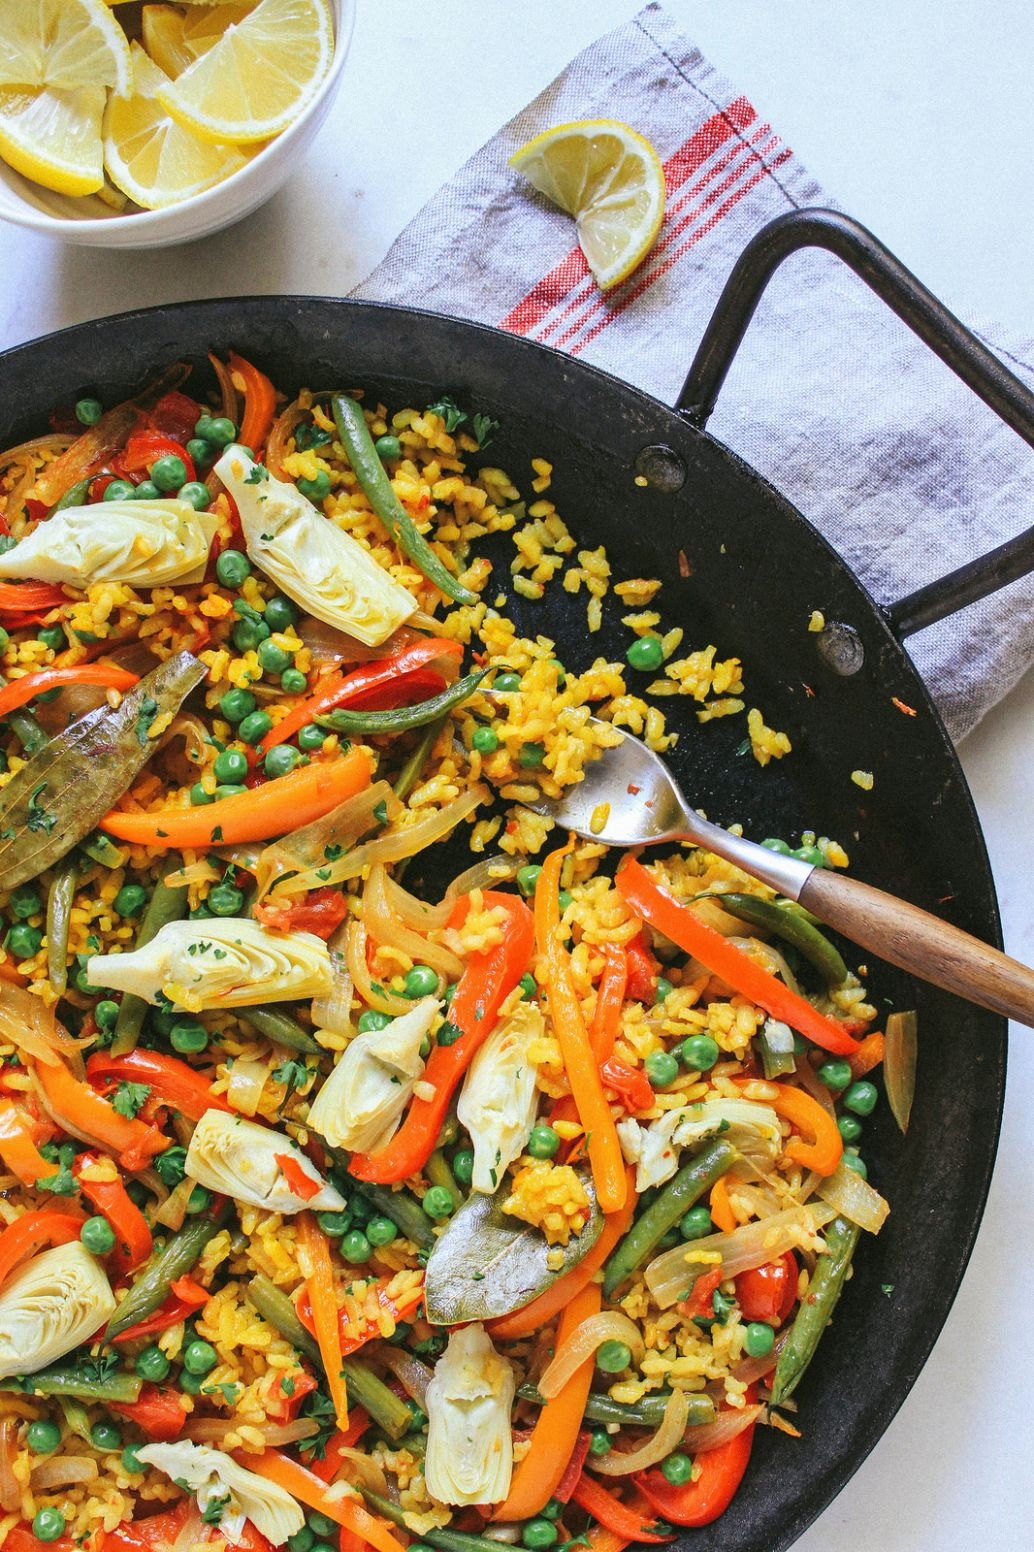 Easy Vegetable Paella (Vegan Spanish Recipe) - The Simple Veganista